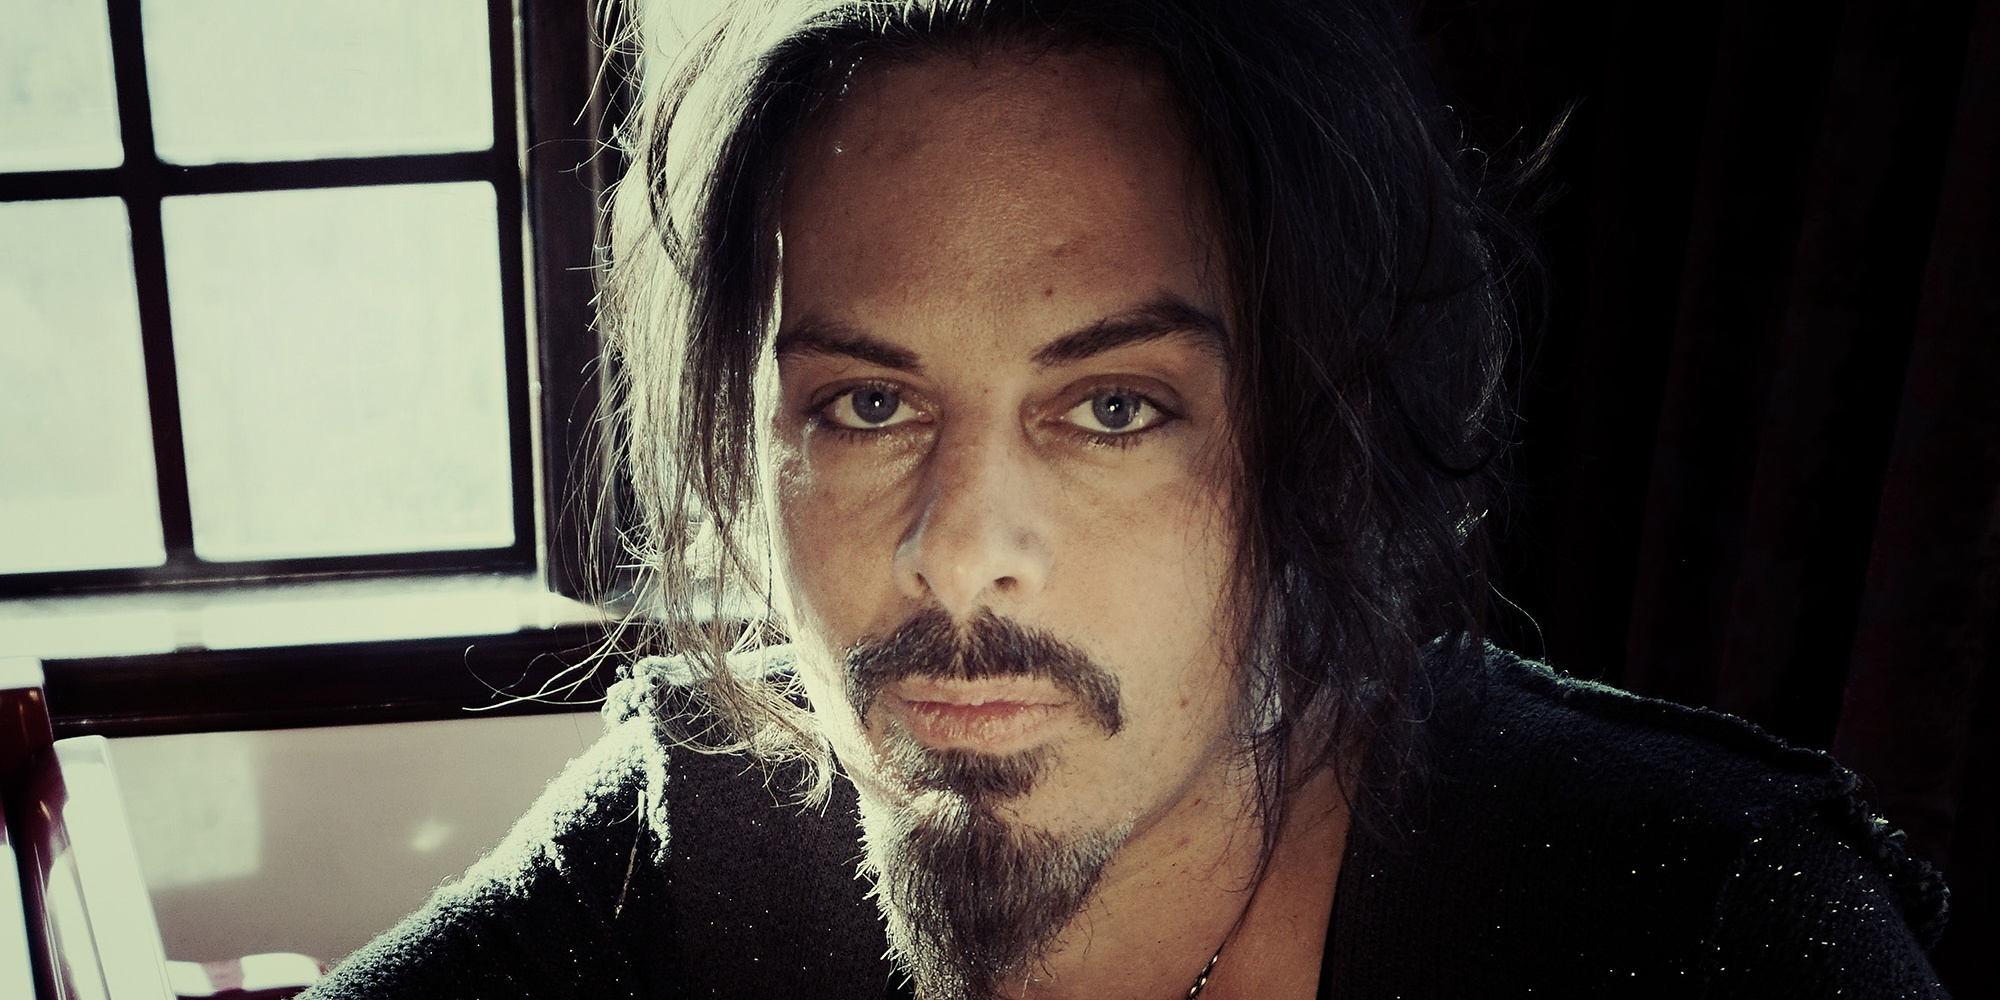 Hard rock luminary Richie Kotzen to perform in Singapore